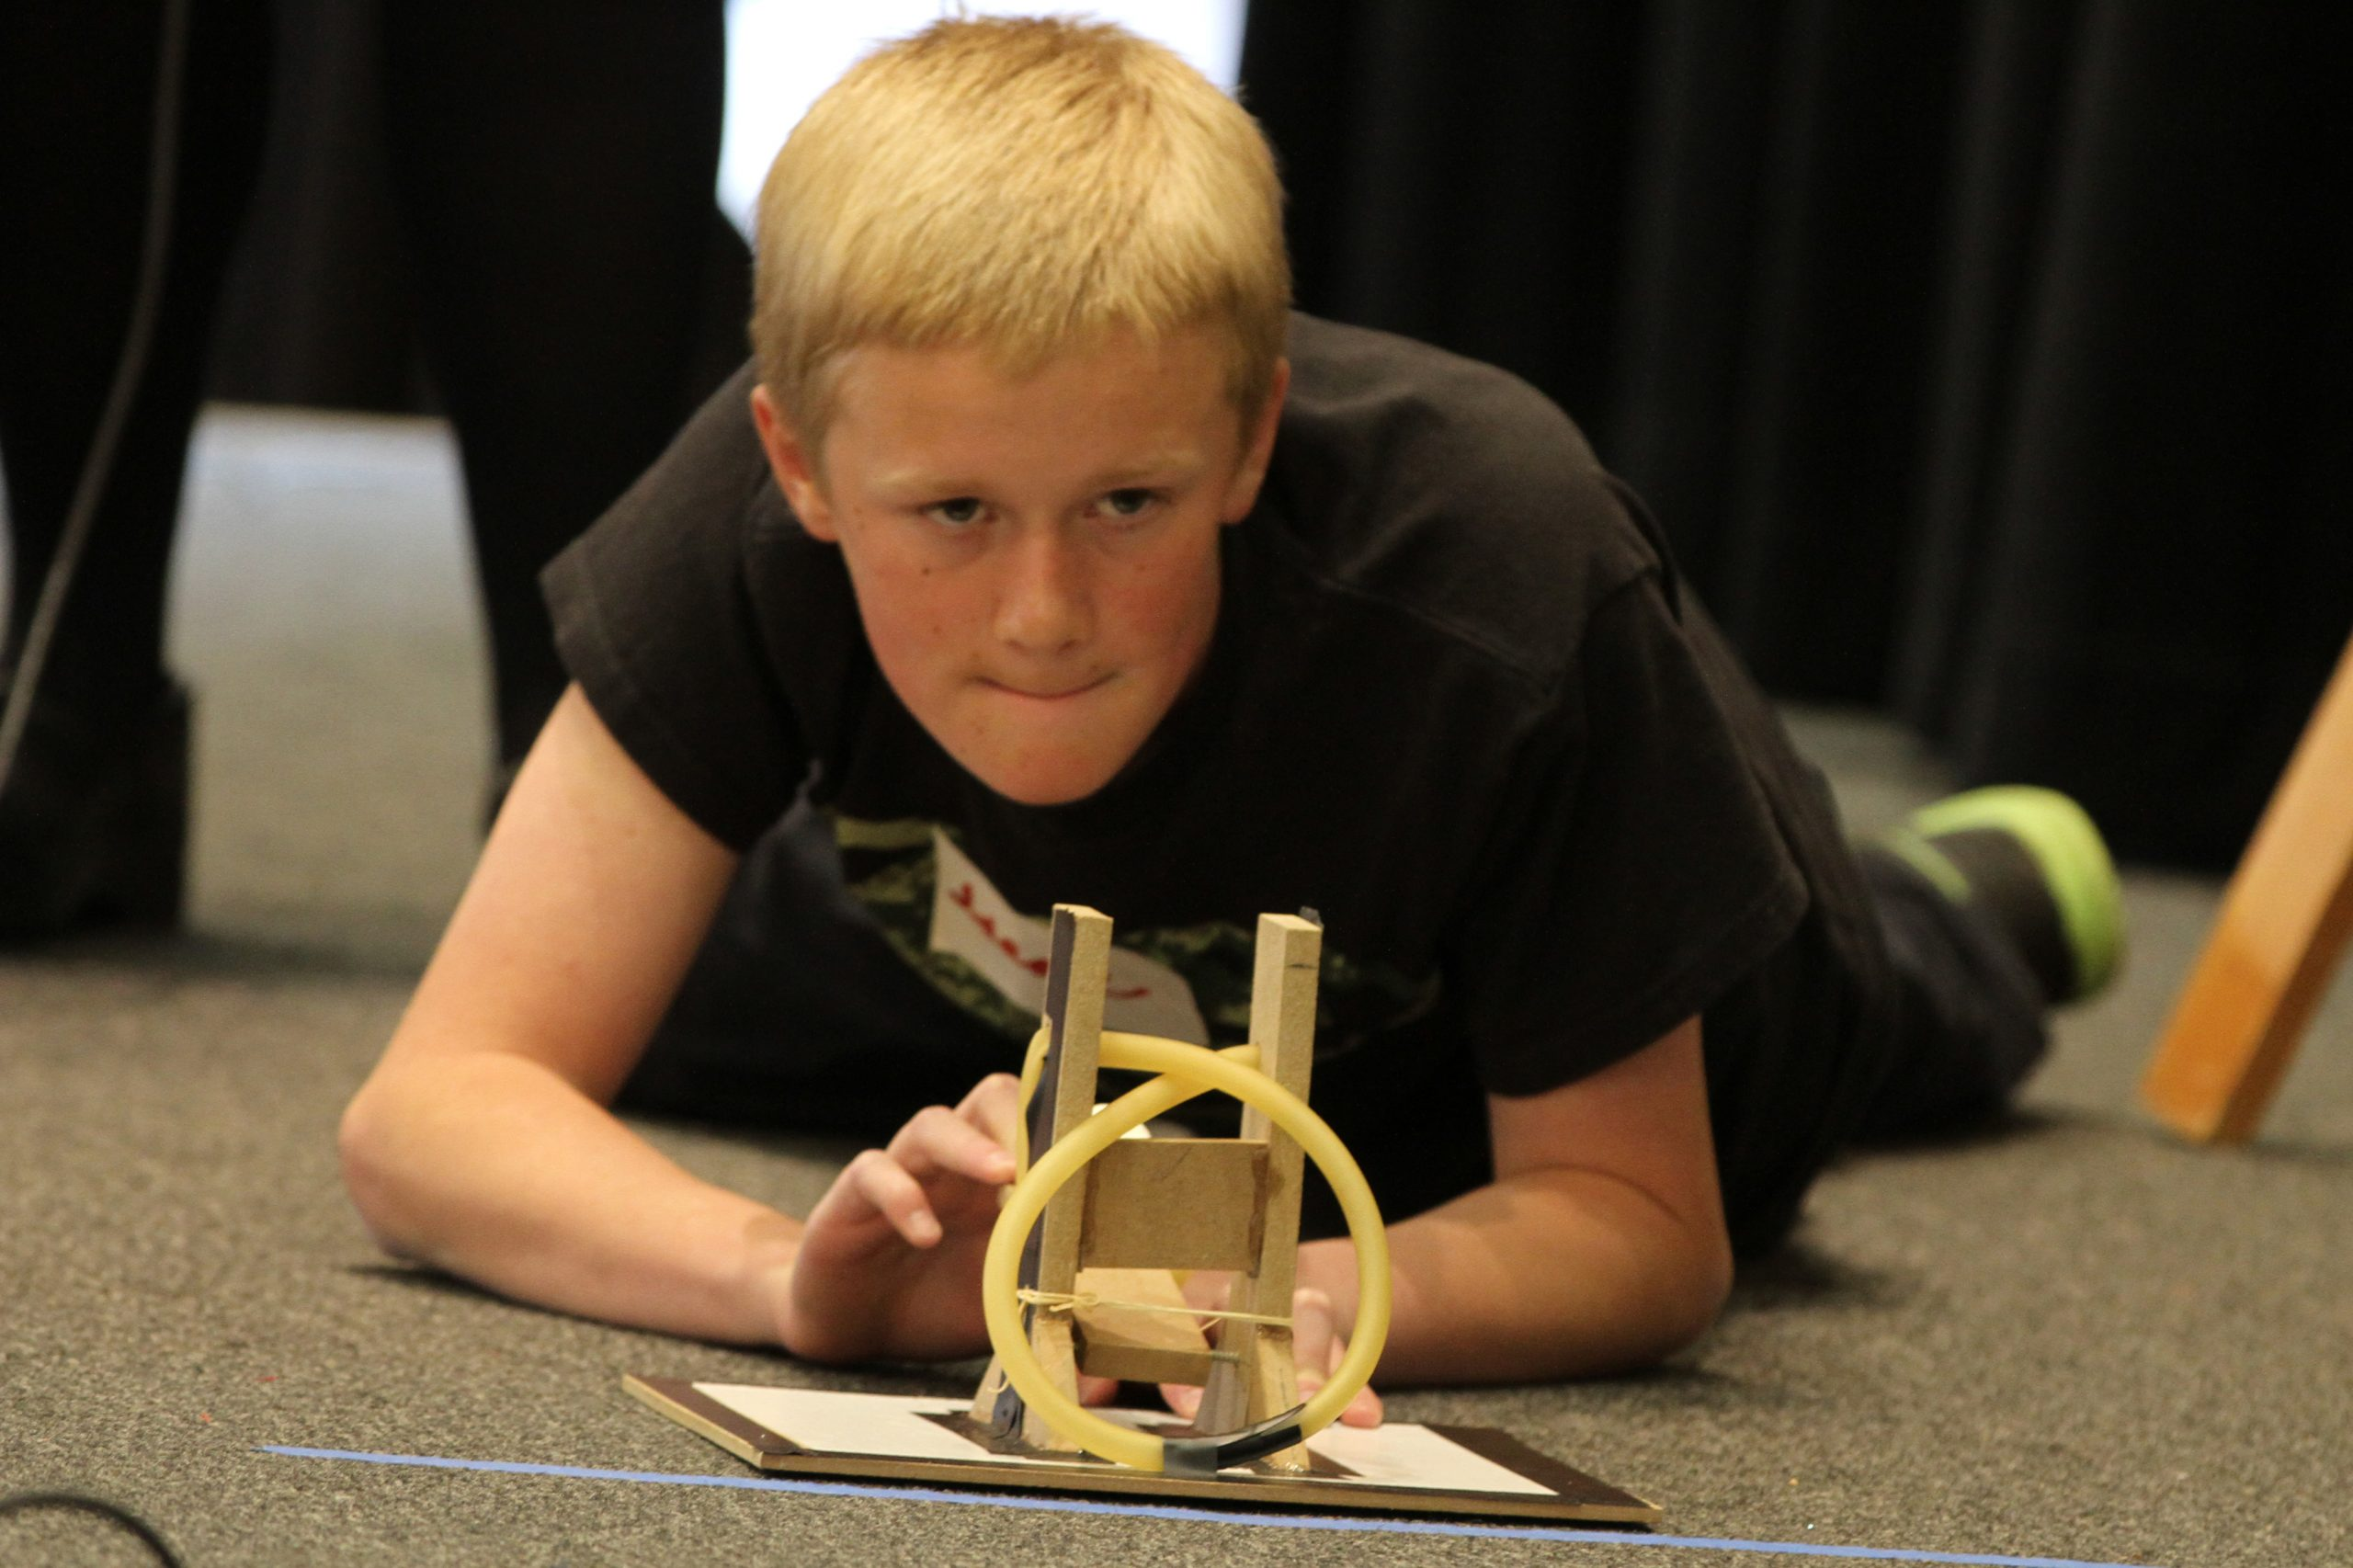 An elementary student launches a marshmallow from a homemade catapult he constructed for Elementary Engineering Week at the University of Utah The event, organized by the U's College of Engineering and sponsored by Phillips 66, takes place March 23–27 at the University of Utah's A. Ray Olpin Student Union Building ballroom, 200 S. Central Campus Drive, Salt Lake City. Each day runs from 9:30 a.m. to noon. Elementary Engineering Week invites nearly 2,000 Utah students to come and learn about engineering concepts. Activities include testing wood catapults they built in class, building fish that swim out of modeling clay, and constructing a skyscraper that can withstand a blast of wind.